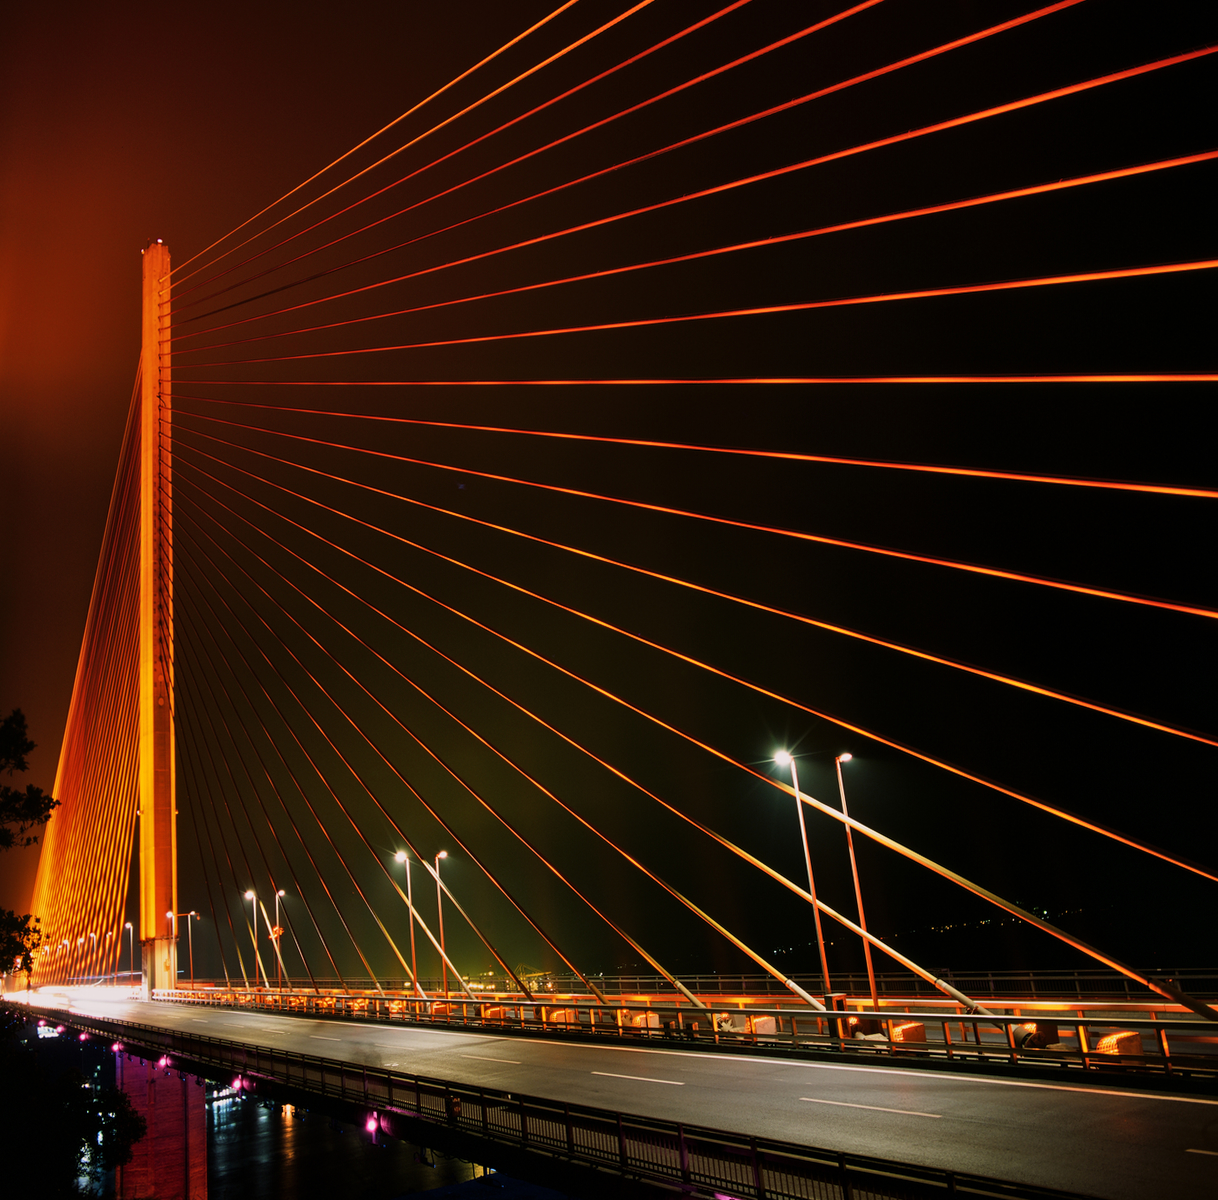 Bai Chay Bridge in Orange DT 1200